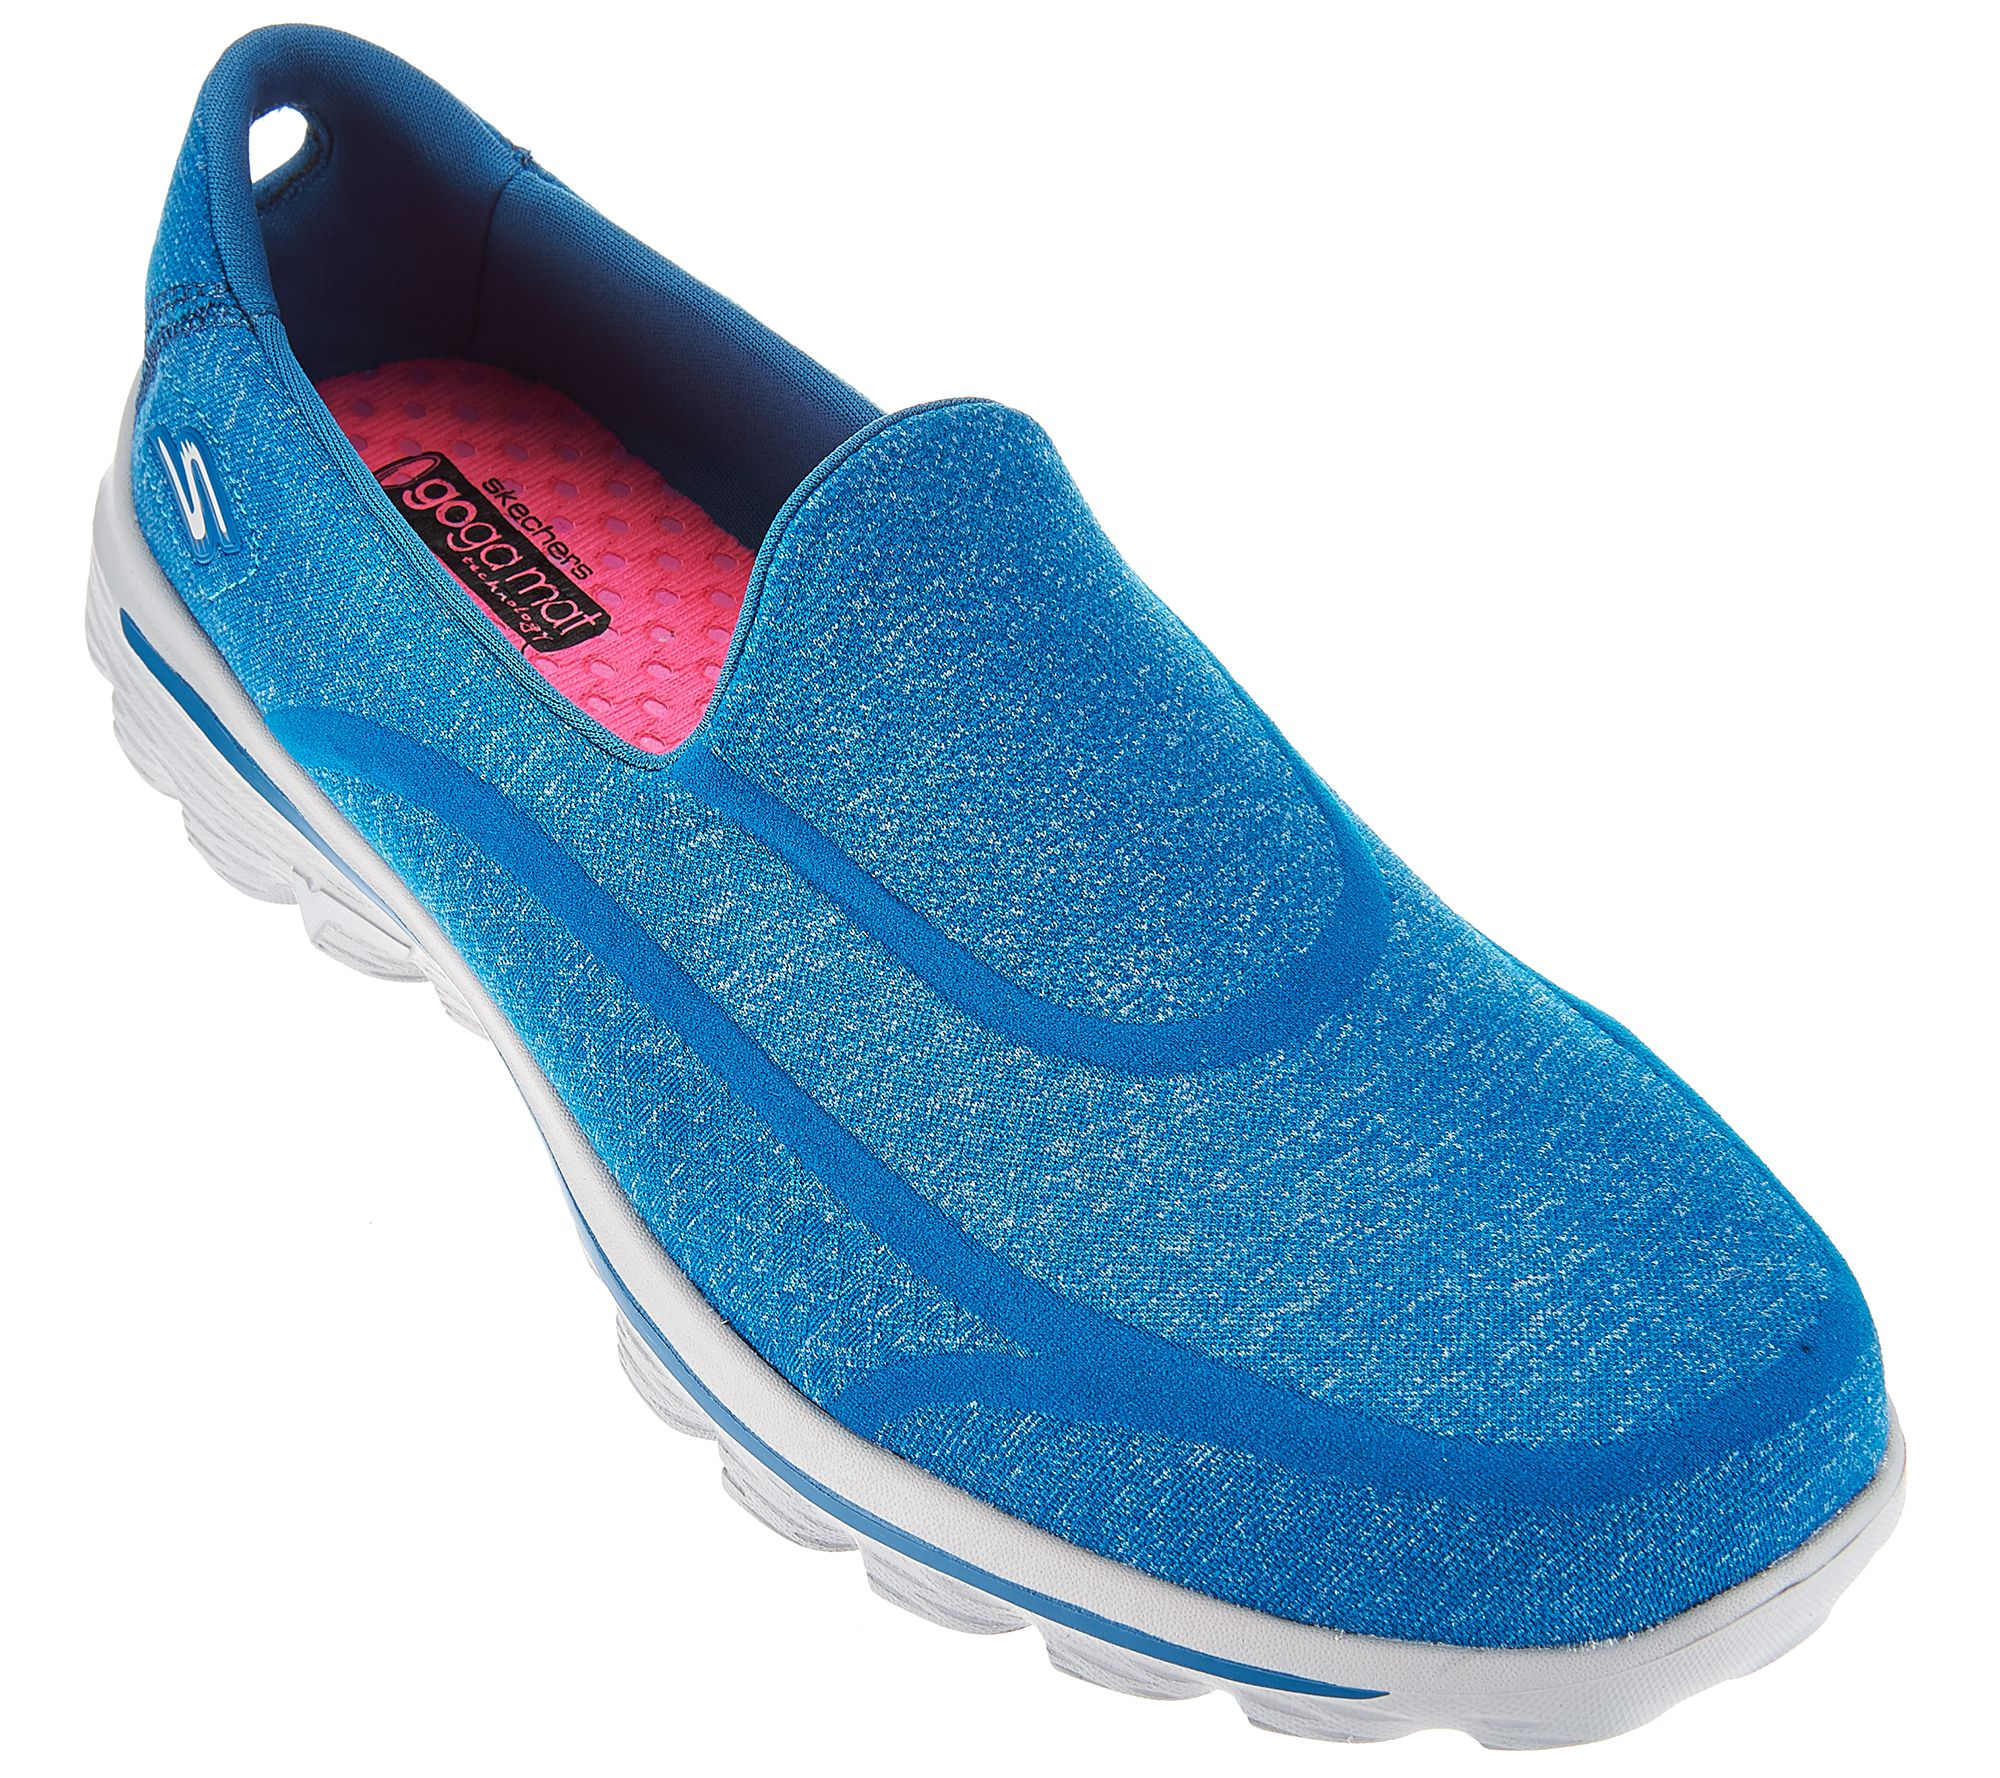 Skechers Gowalk2 Sneakers w/GOGA Mat - Supersock 2 - A275630